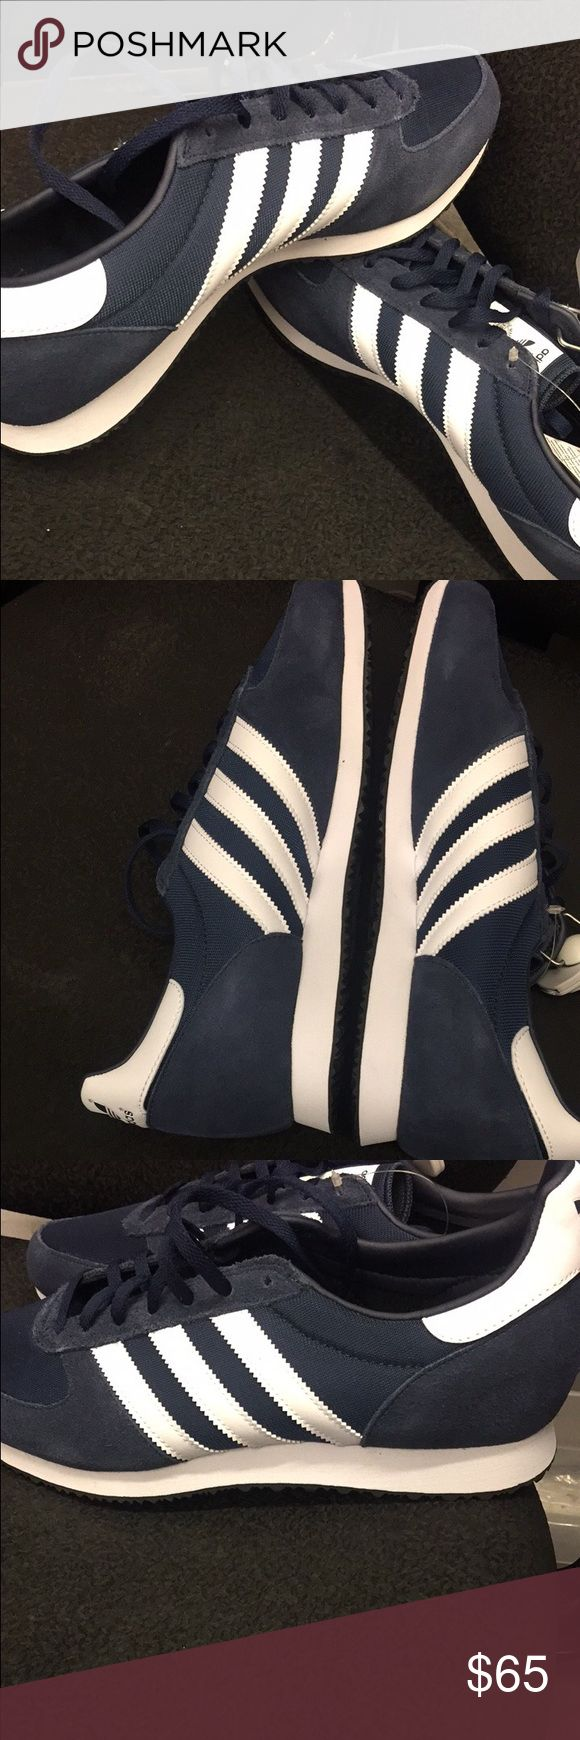 Adidas ZX racer size 11 Brand new adidas ZX racer size 11 for men. Comes with box. Adidas Shoes Sneakers